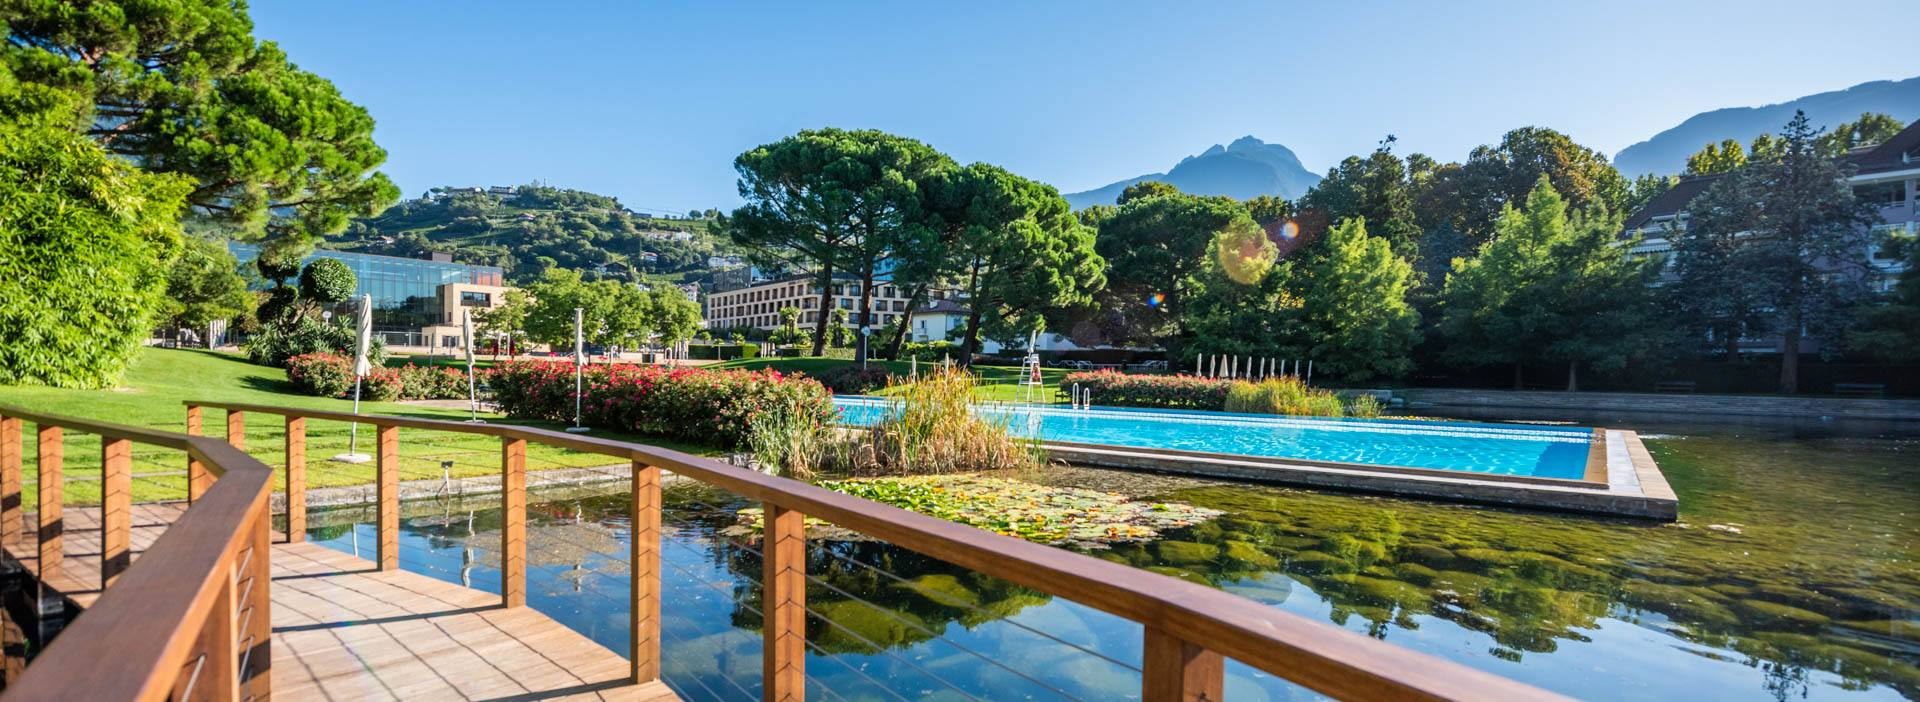 Therme Meran - Poollandschaft